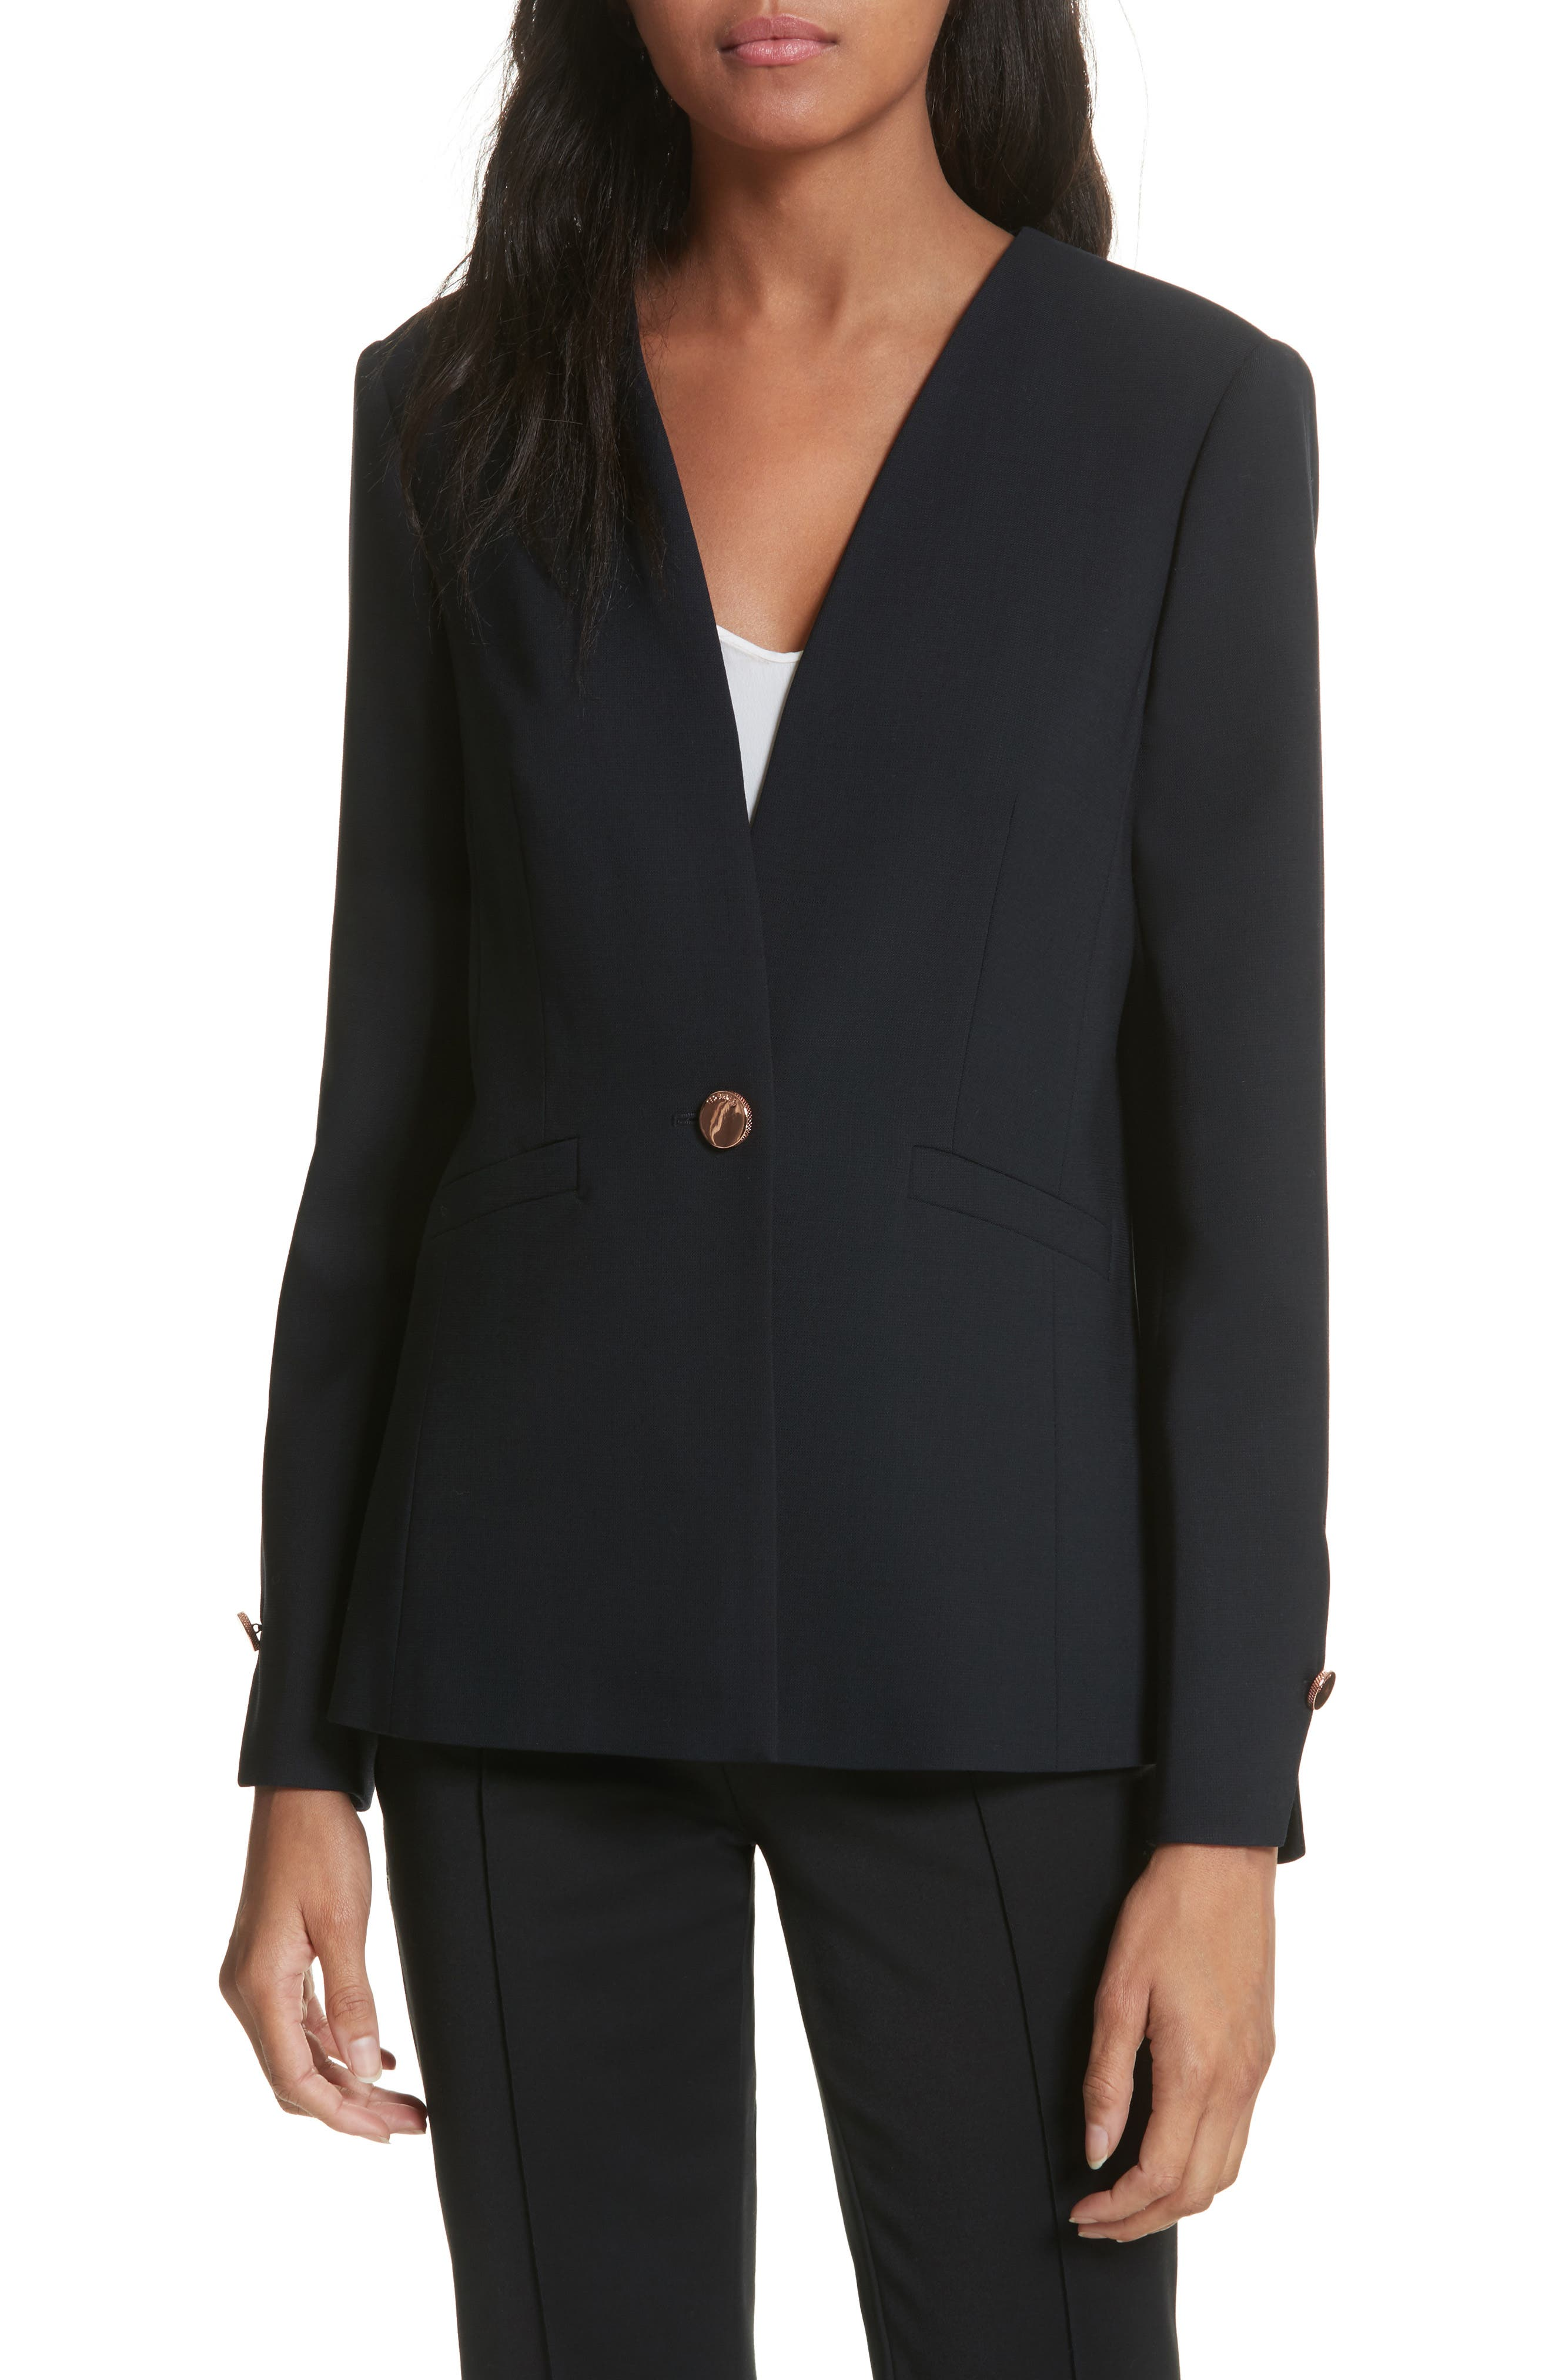 TED BAKER LONDON,                             Ted Working Title Collarless Stretch Wool Jacket,                             Main thumbnail 1, color,                             410